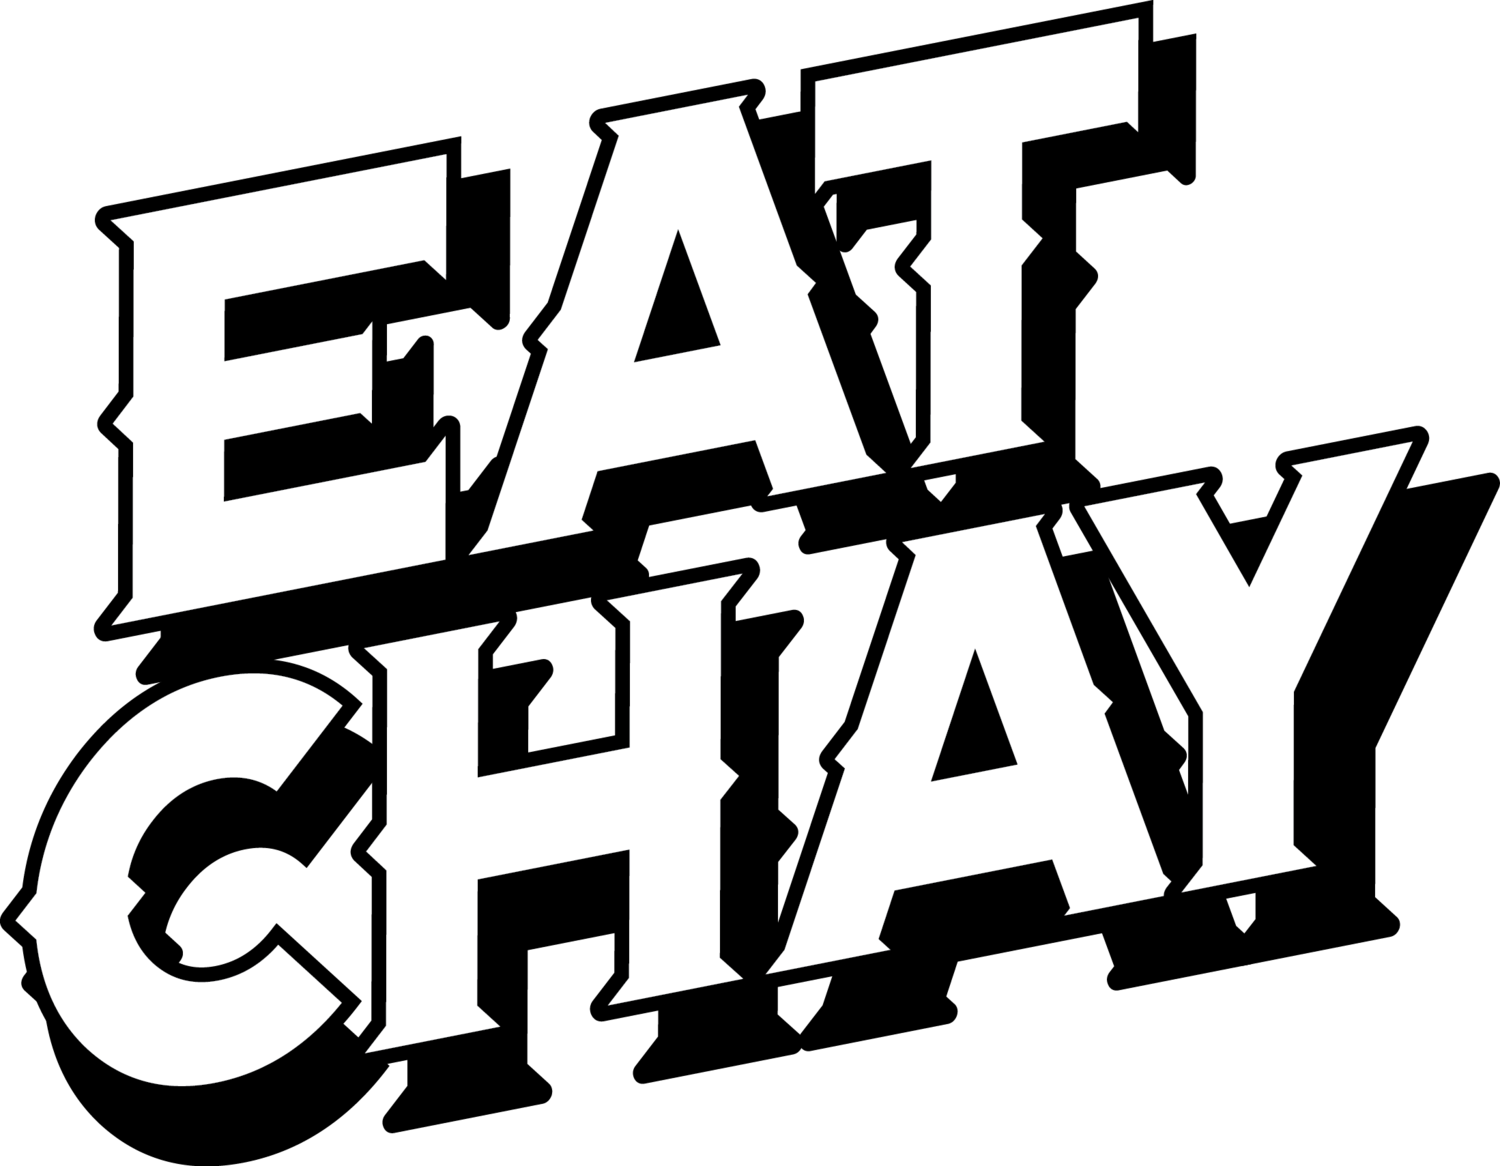 Eat Chay